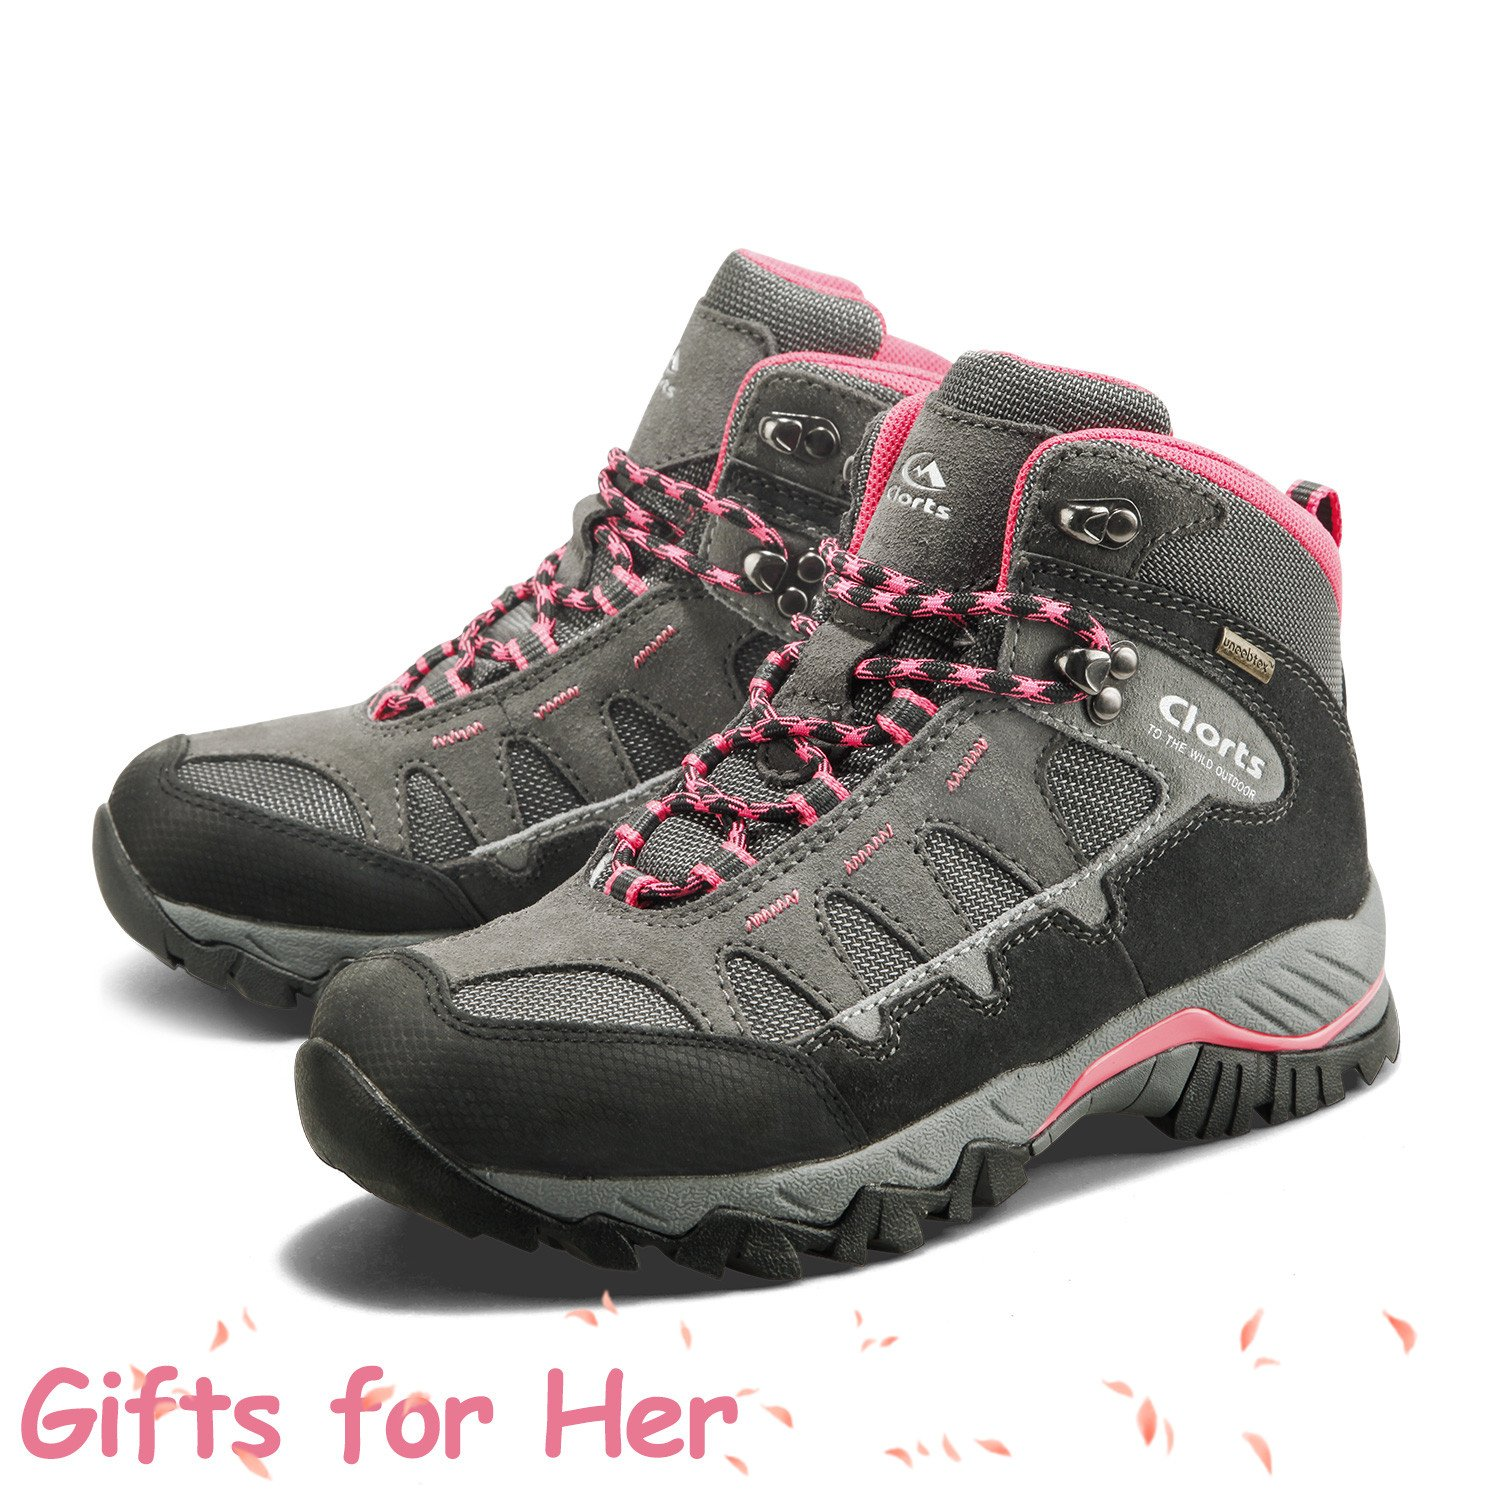 Clorts Women's Suede Leather GTX Waterproof Hiking Boot Outdoor Backpacking Shoe HKM-823E US5.5 by Clorts (Image #3)